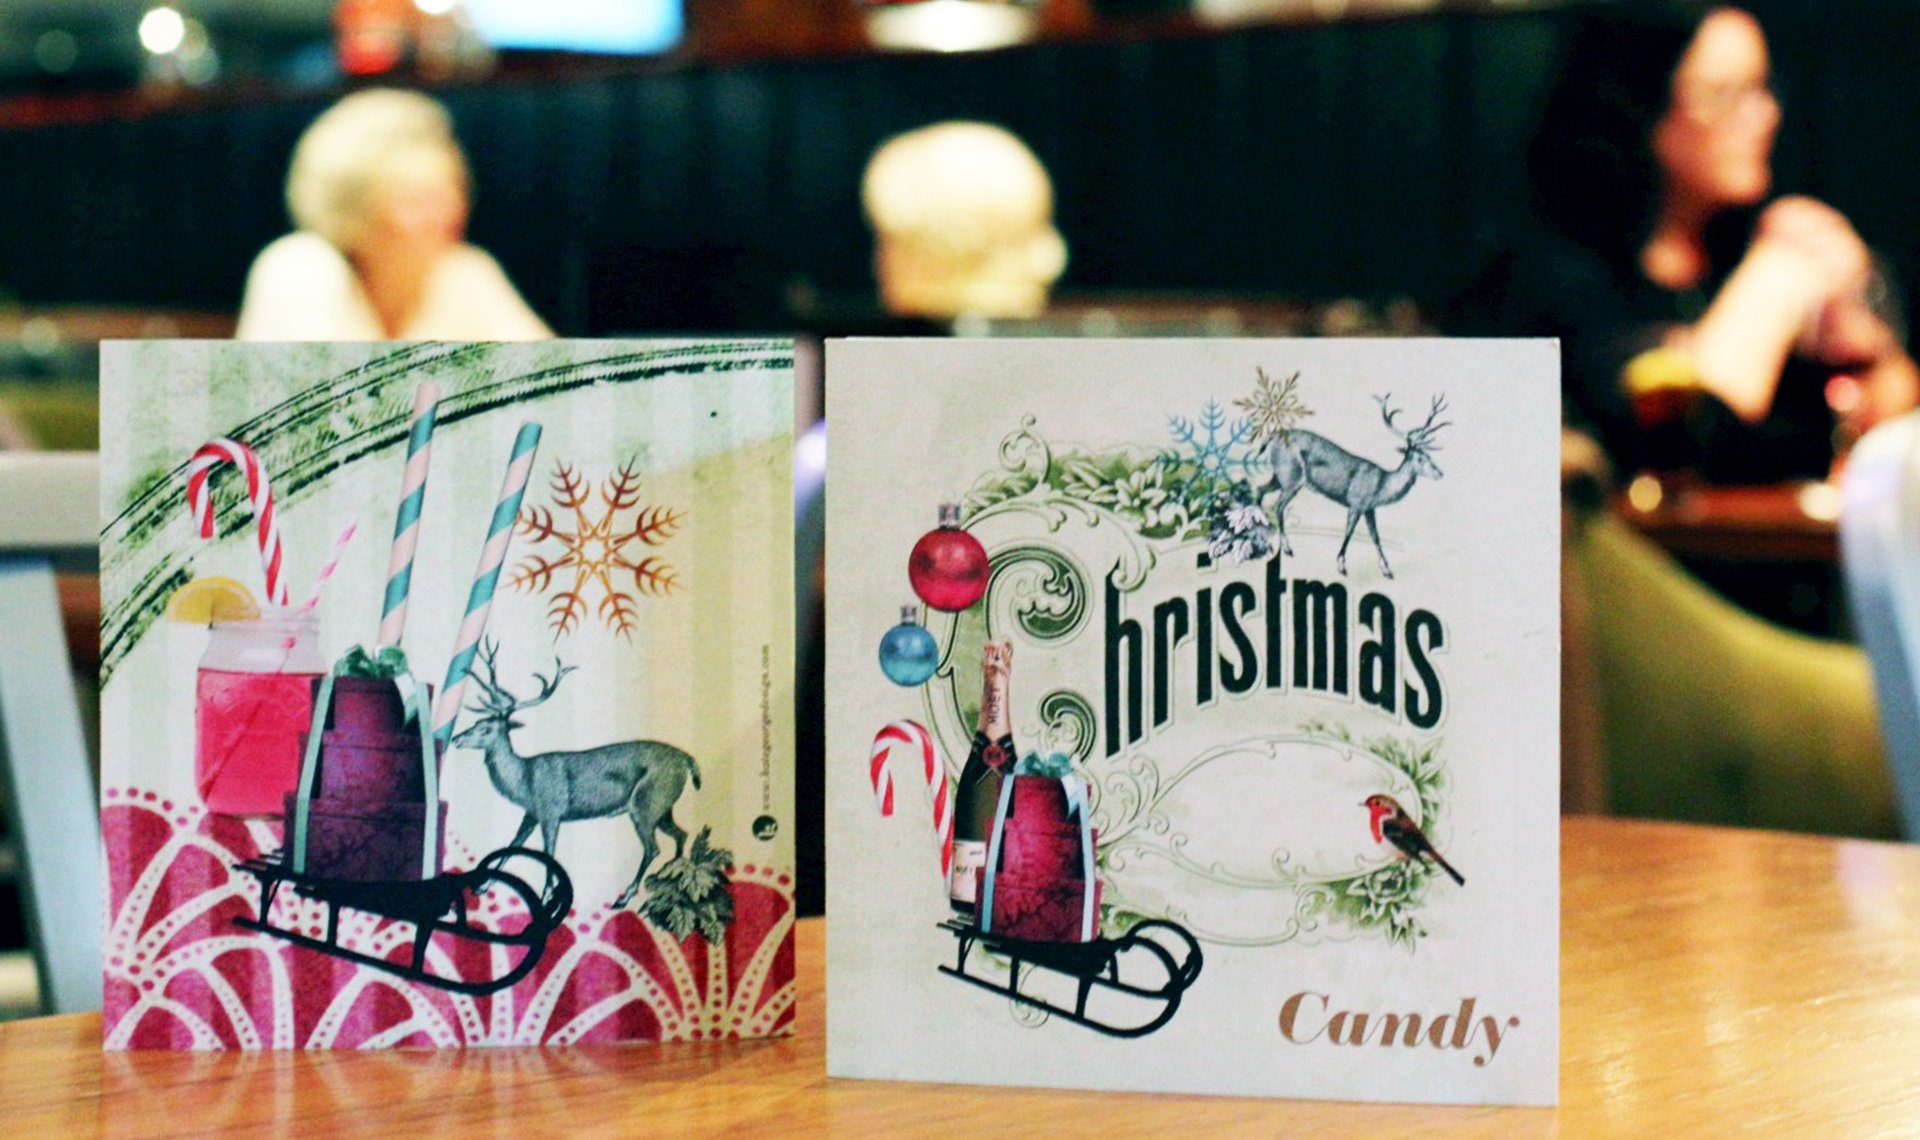 Candy bar vintage inspired Christmas drinks menus